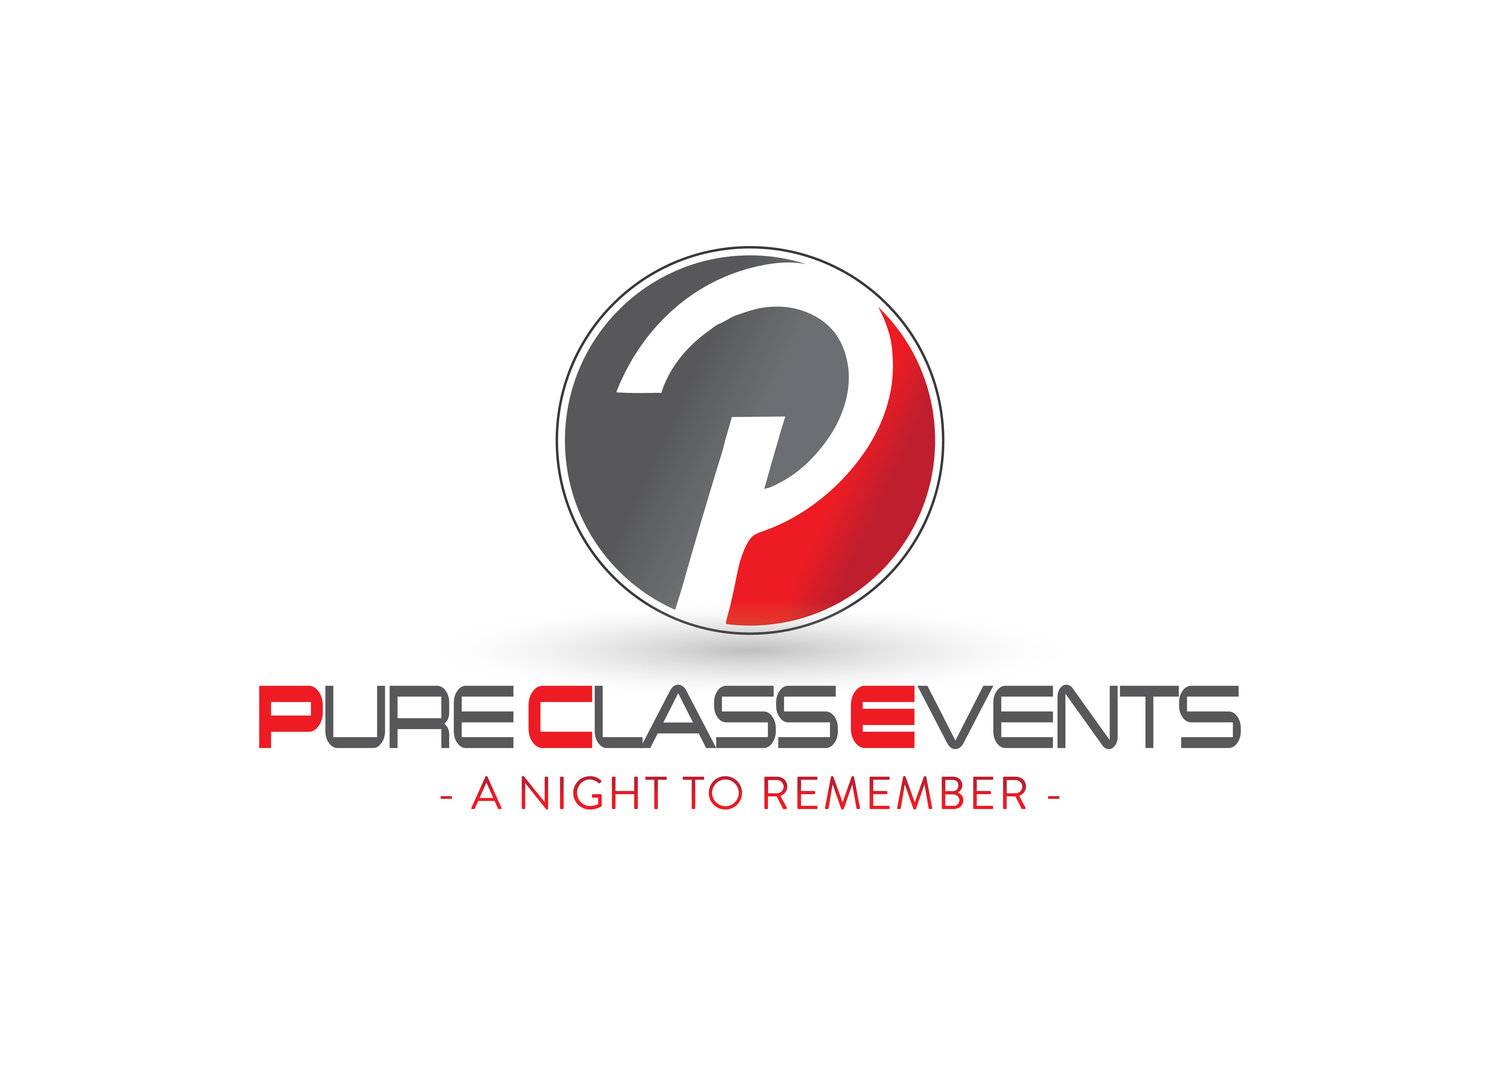 Pure Class events